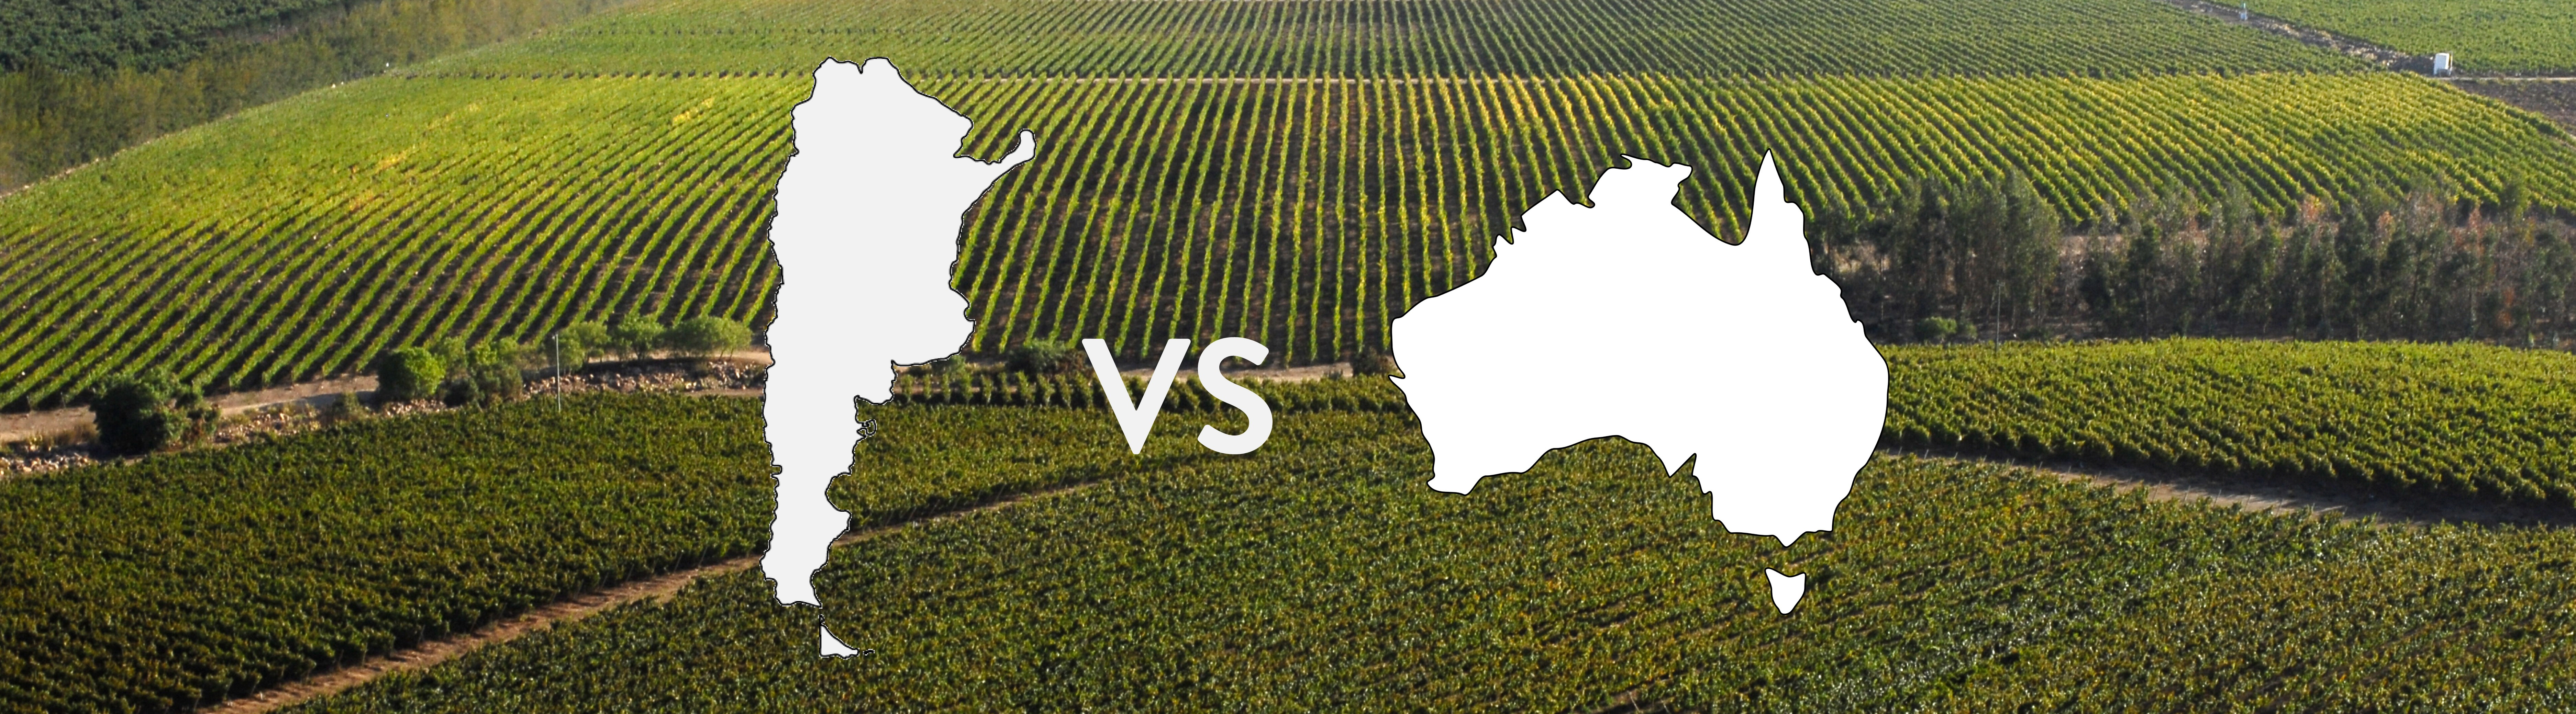 Argentina vs. Australia Wine Industries: A Reasonable Comparison?